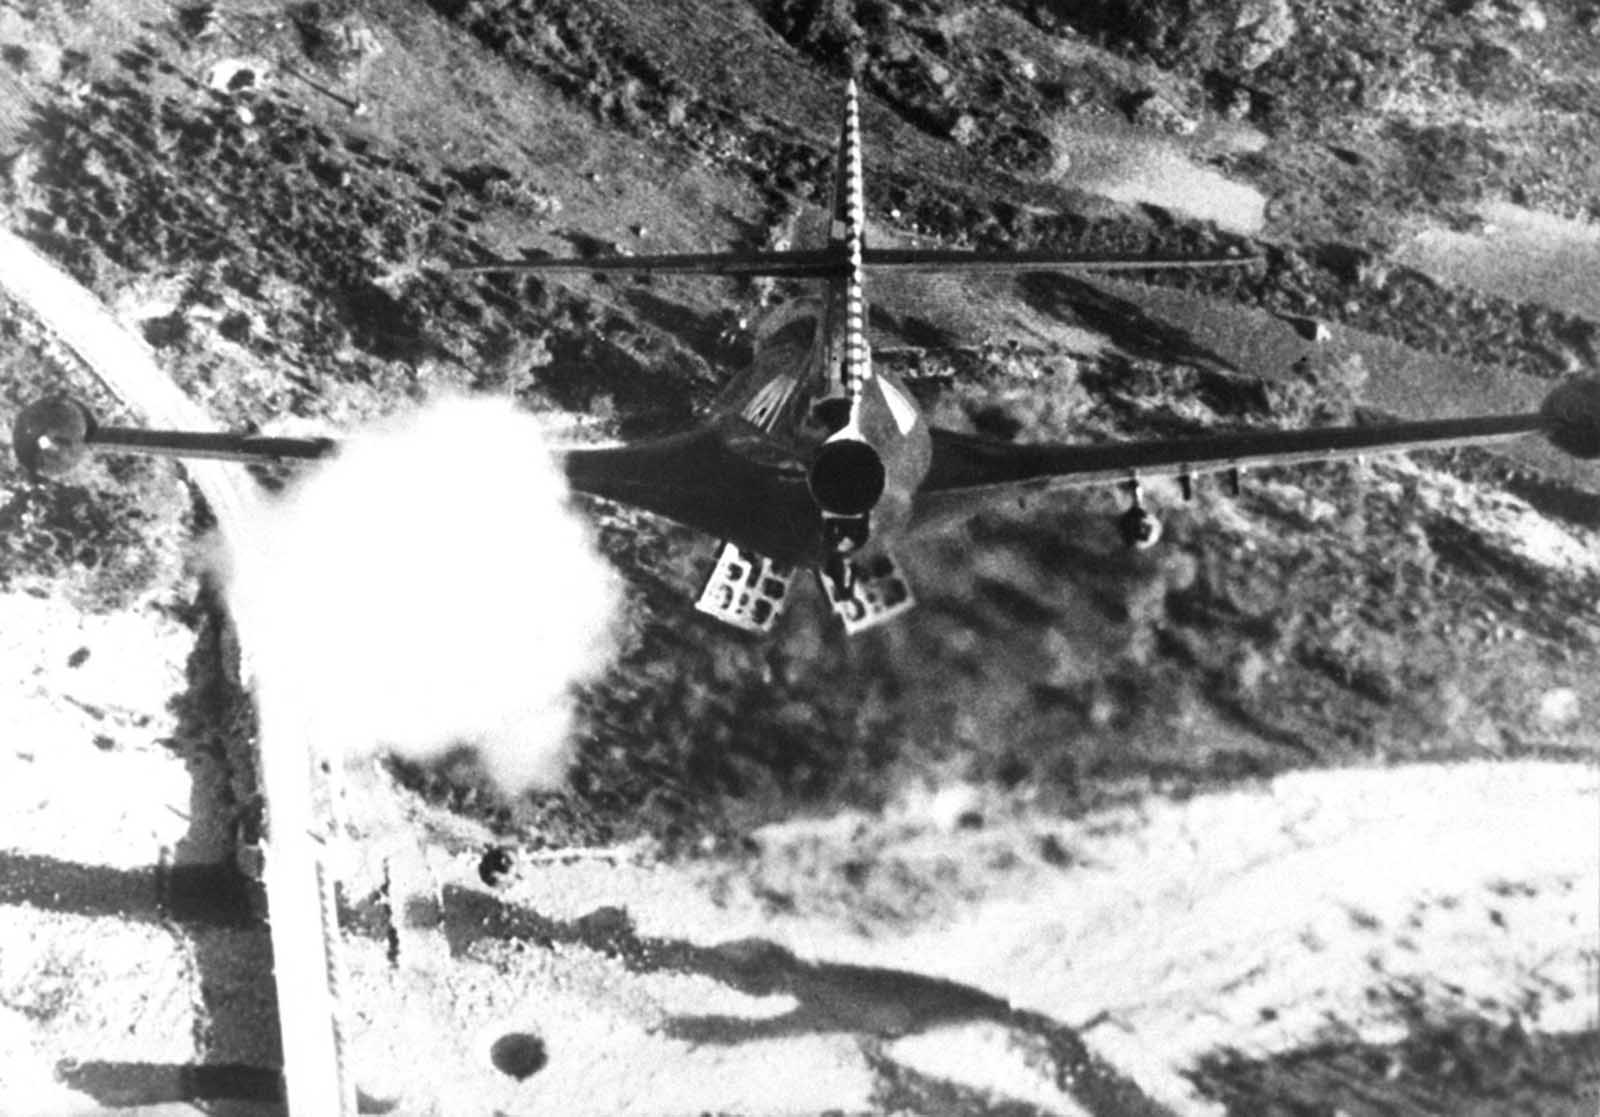 Lt. R. P. Yeatman, from the USS Bon Homme Richard, rocketing and bombing a Korean bridge in November of 1952.